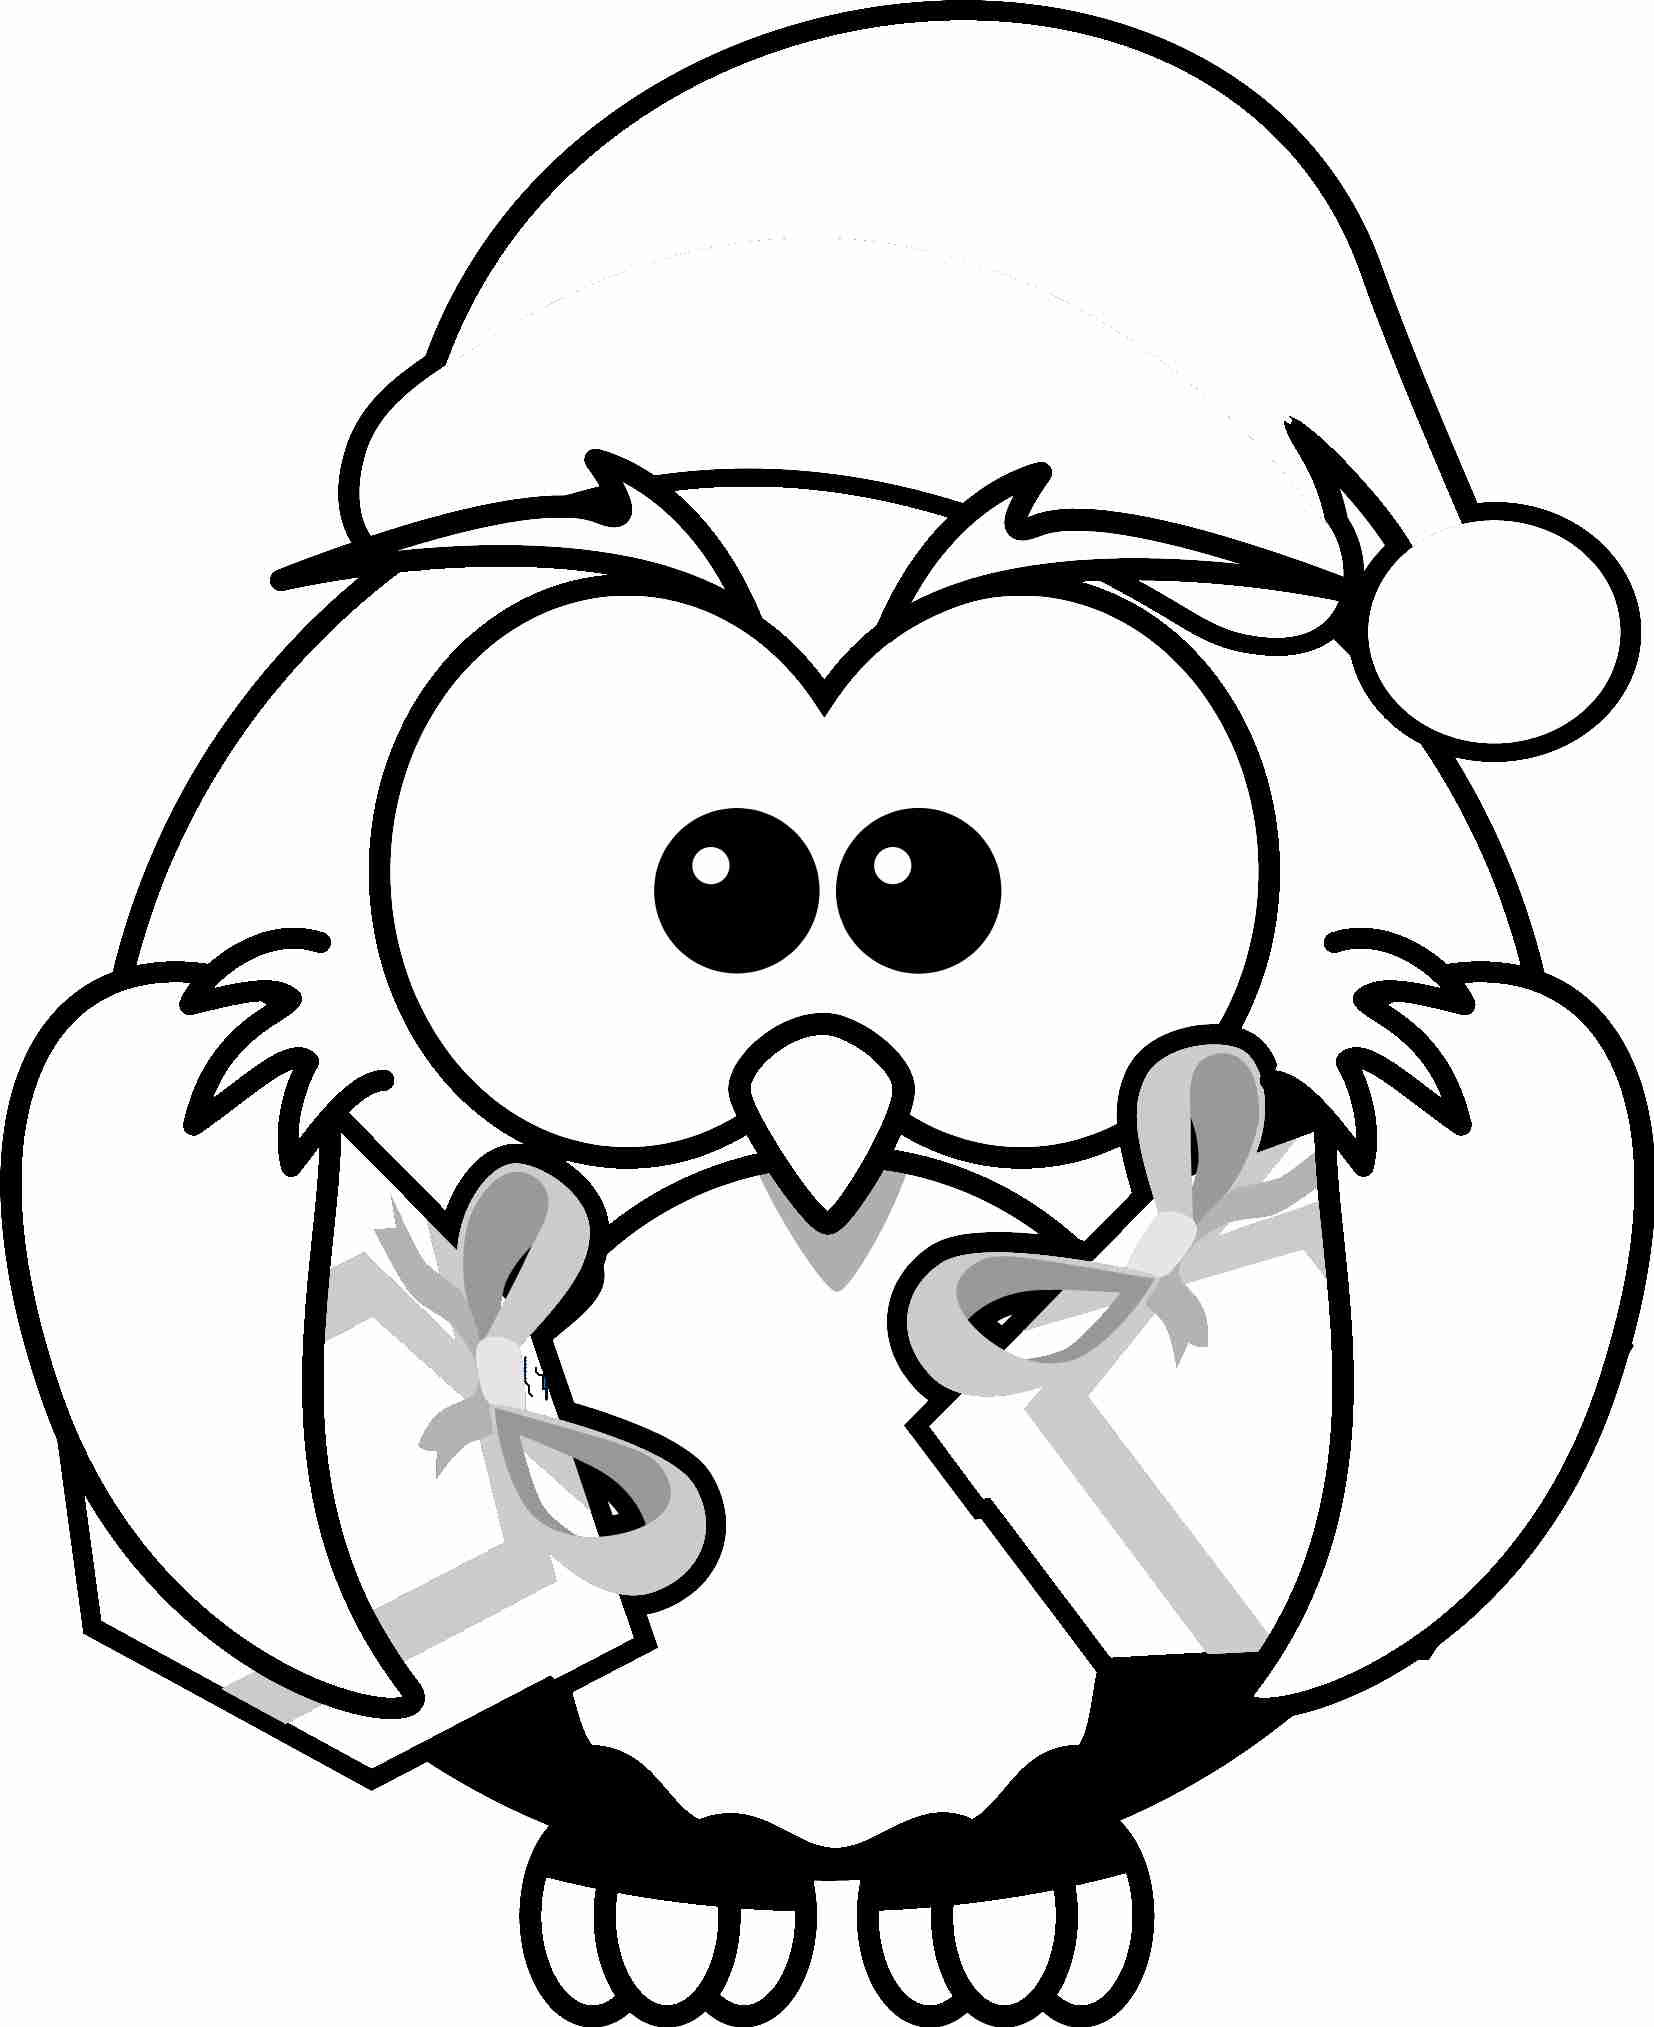 Cute Christmas Animal Coloring Pages - Coloring Home